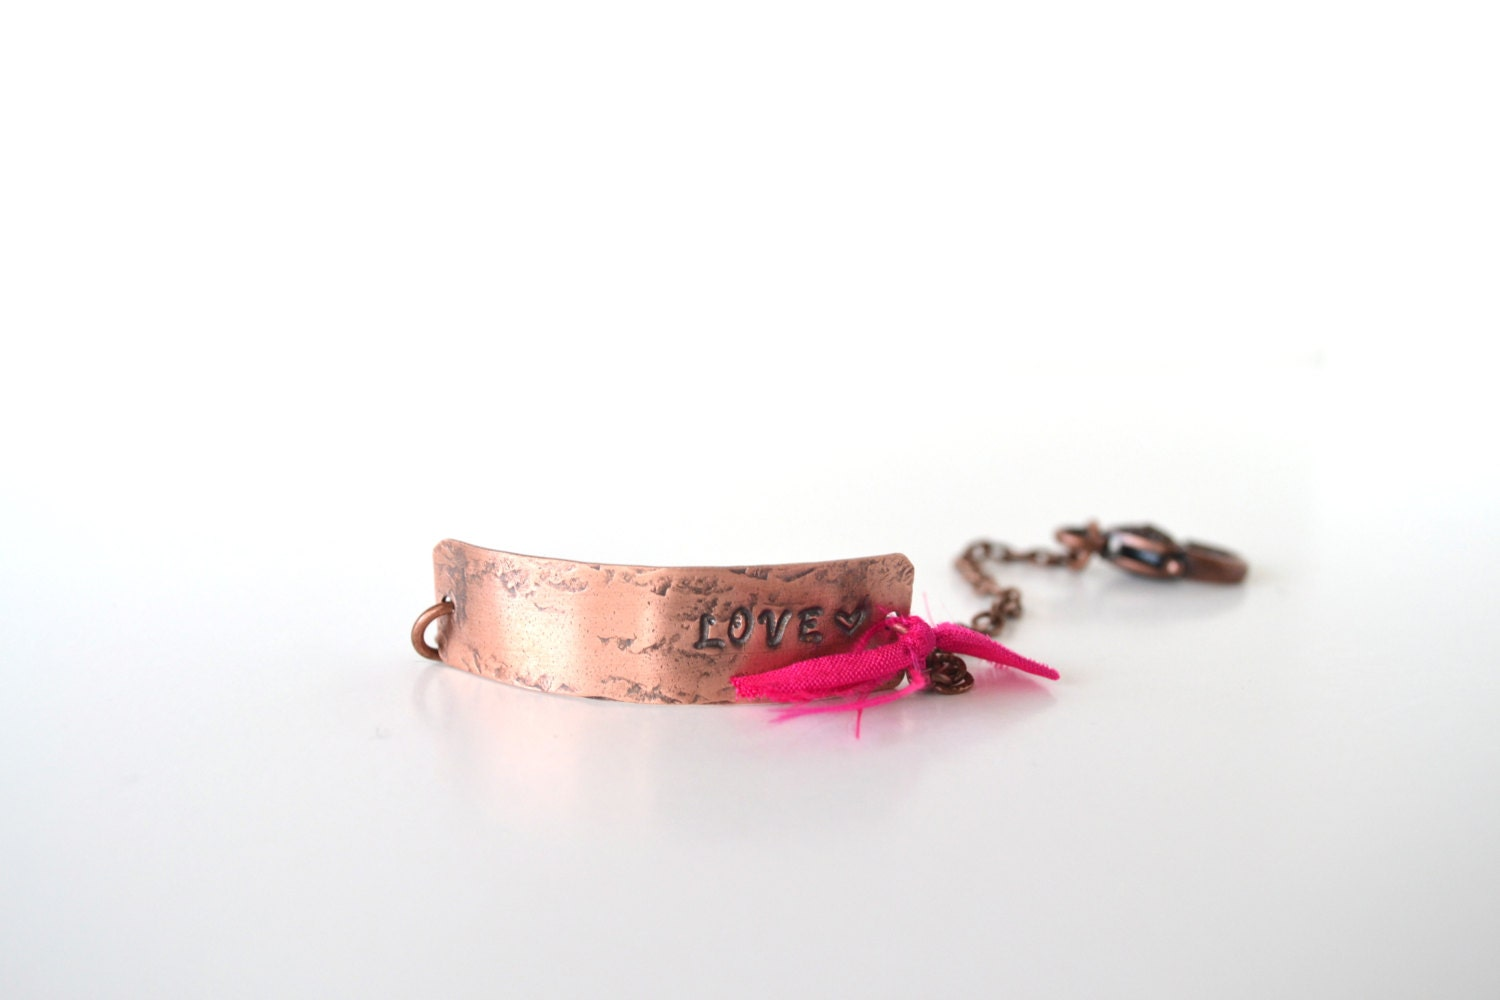 Hand Stamped Love Bracelet, handmade, hand stamped tags, antique finish - ArtIncendi